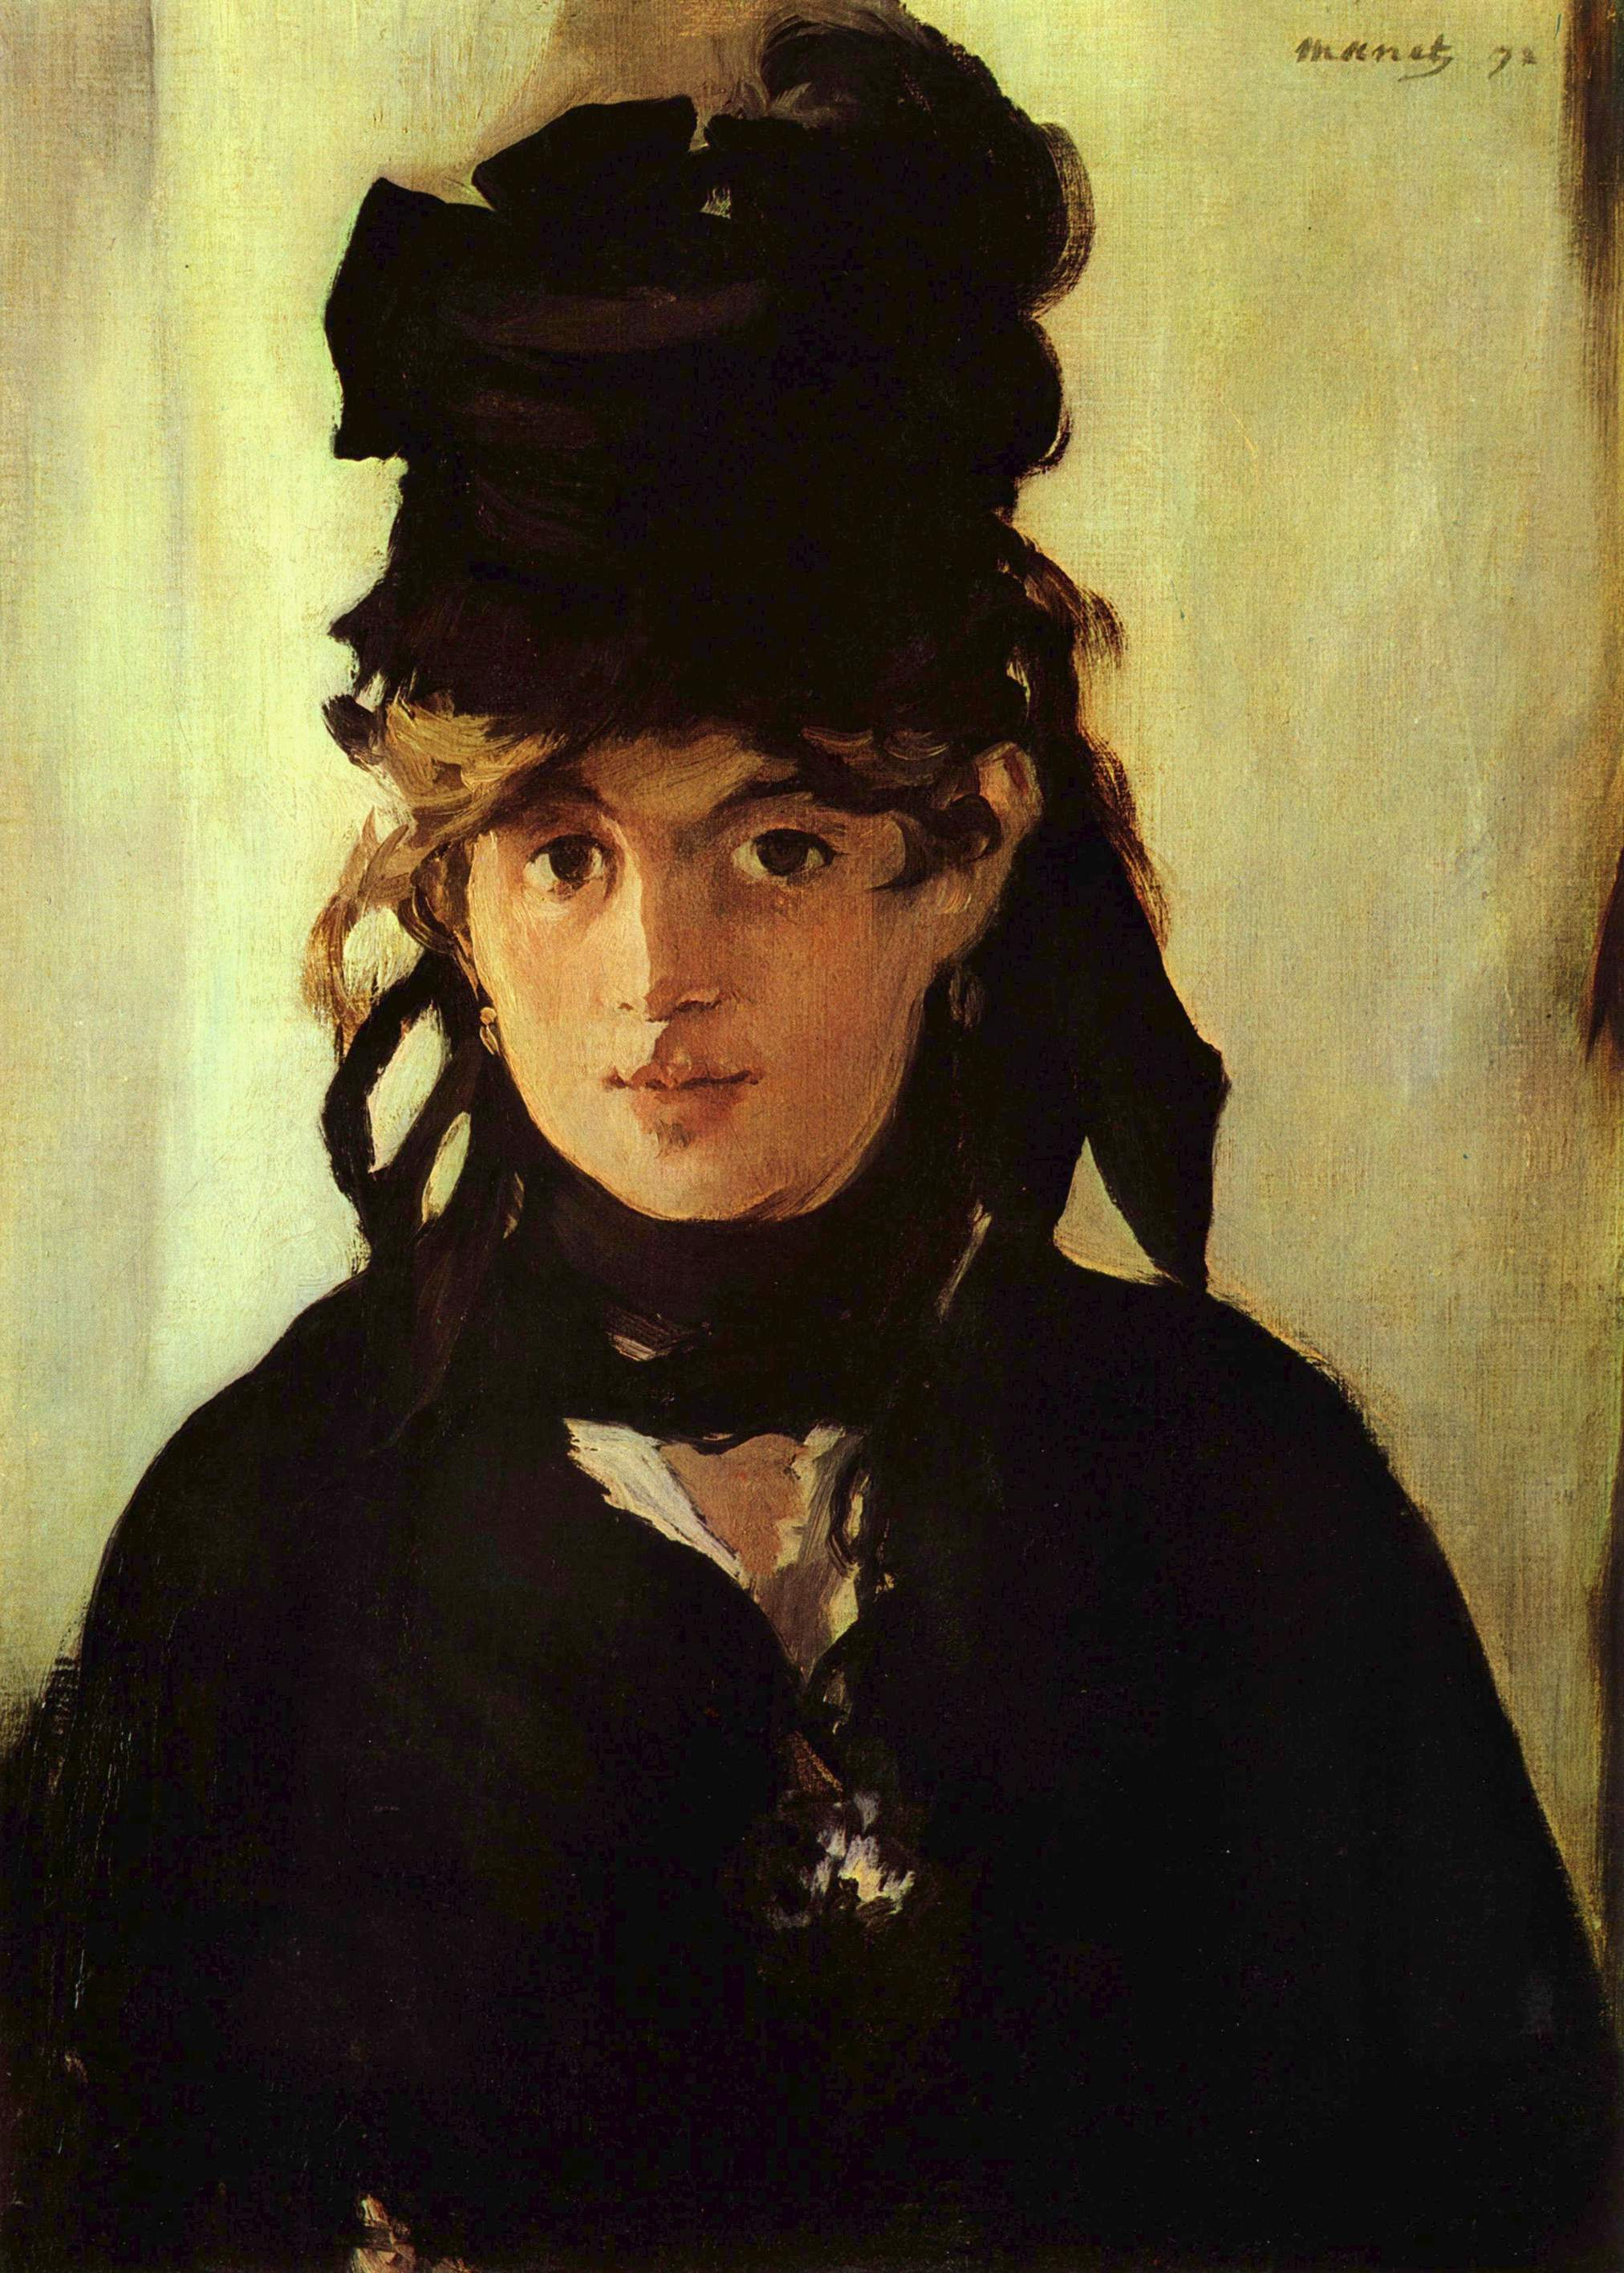 Manet, Portrait of Berthe Morisot